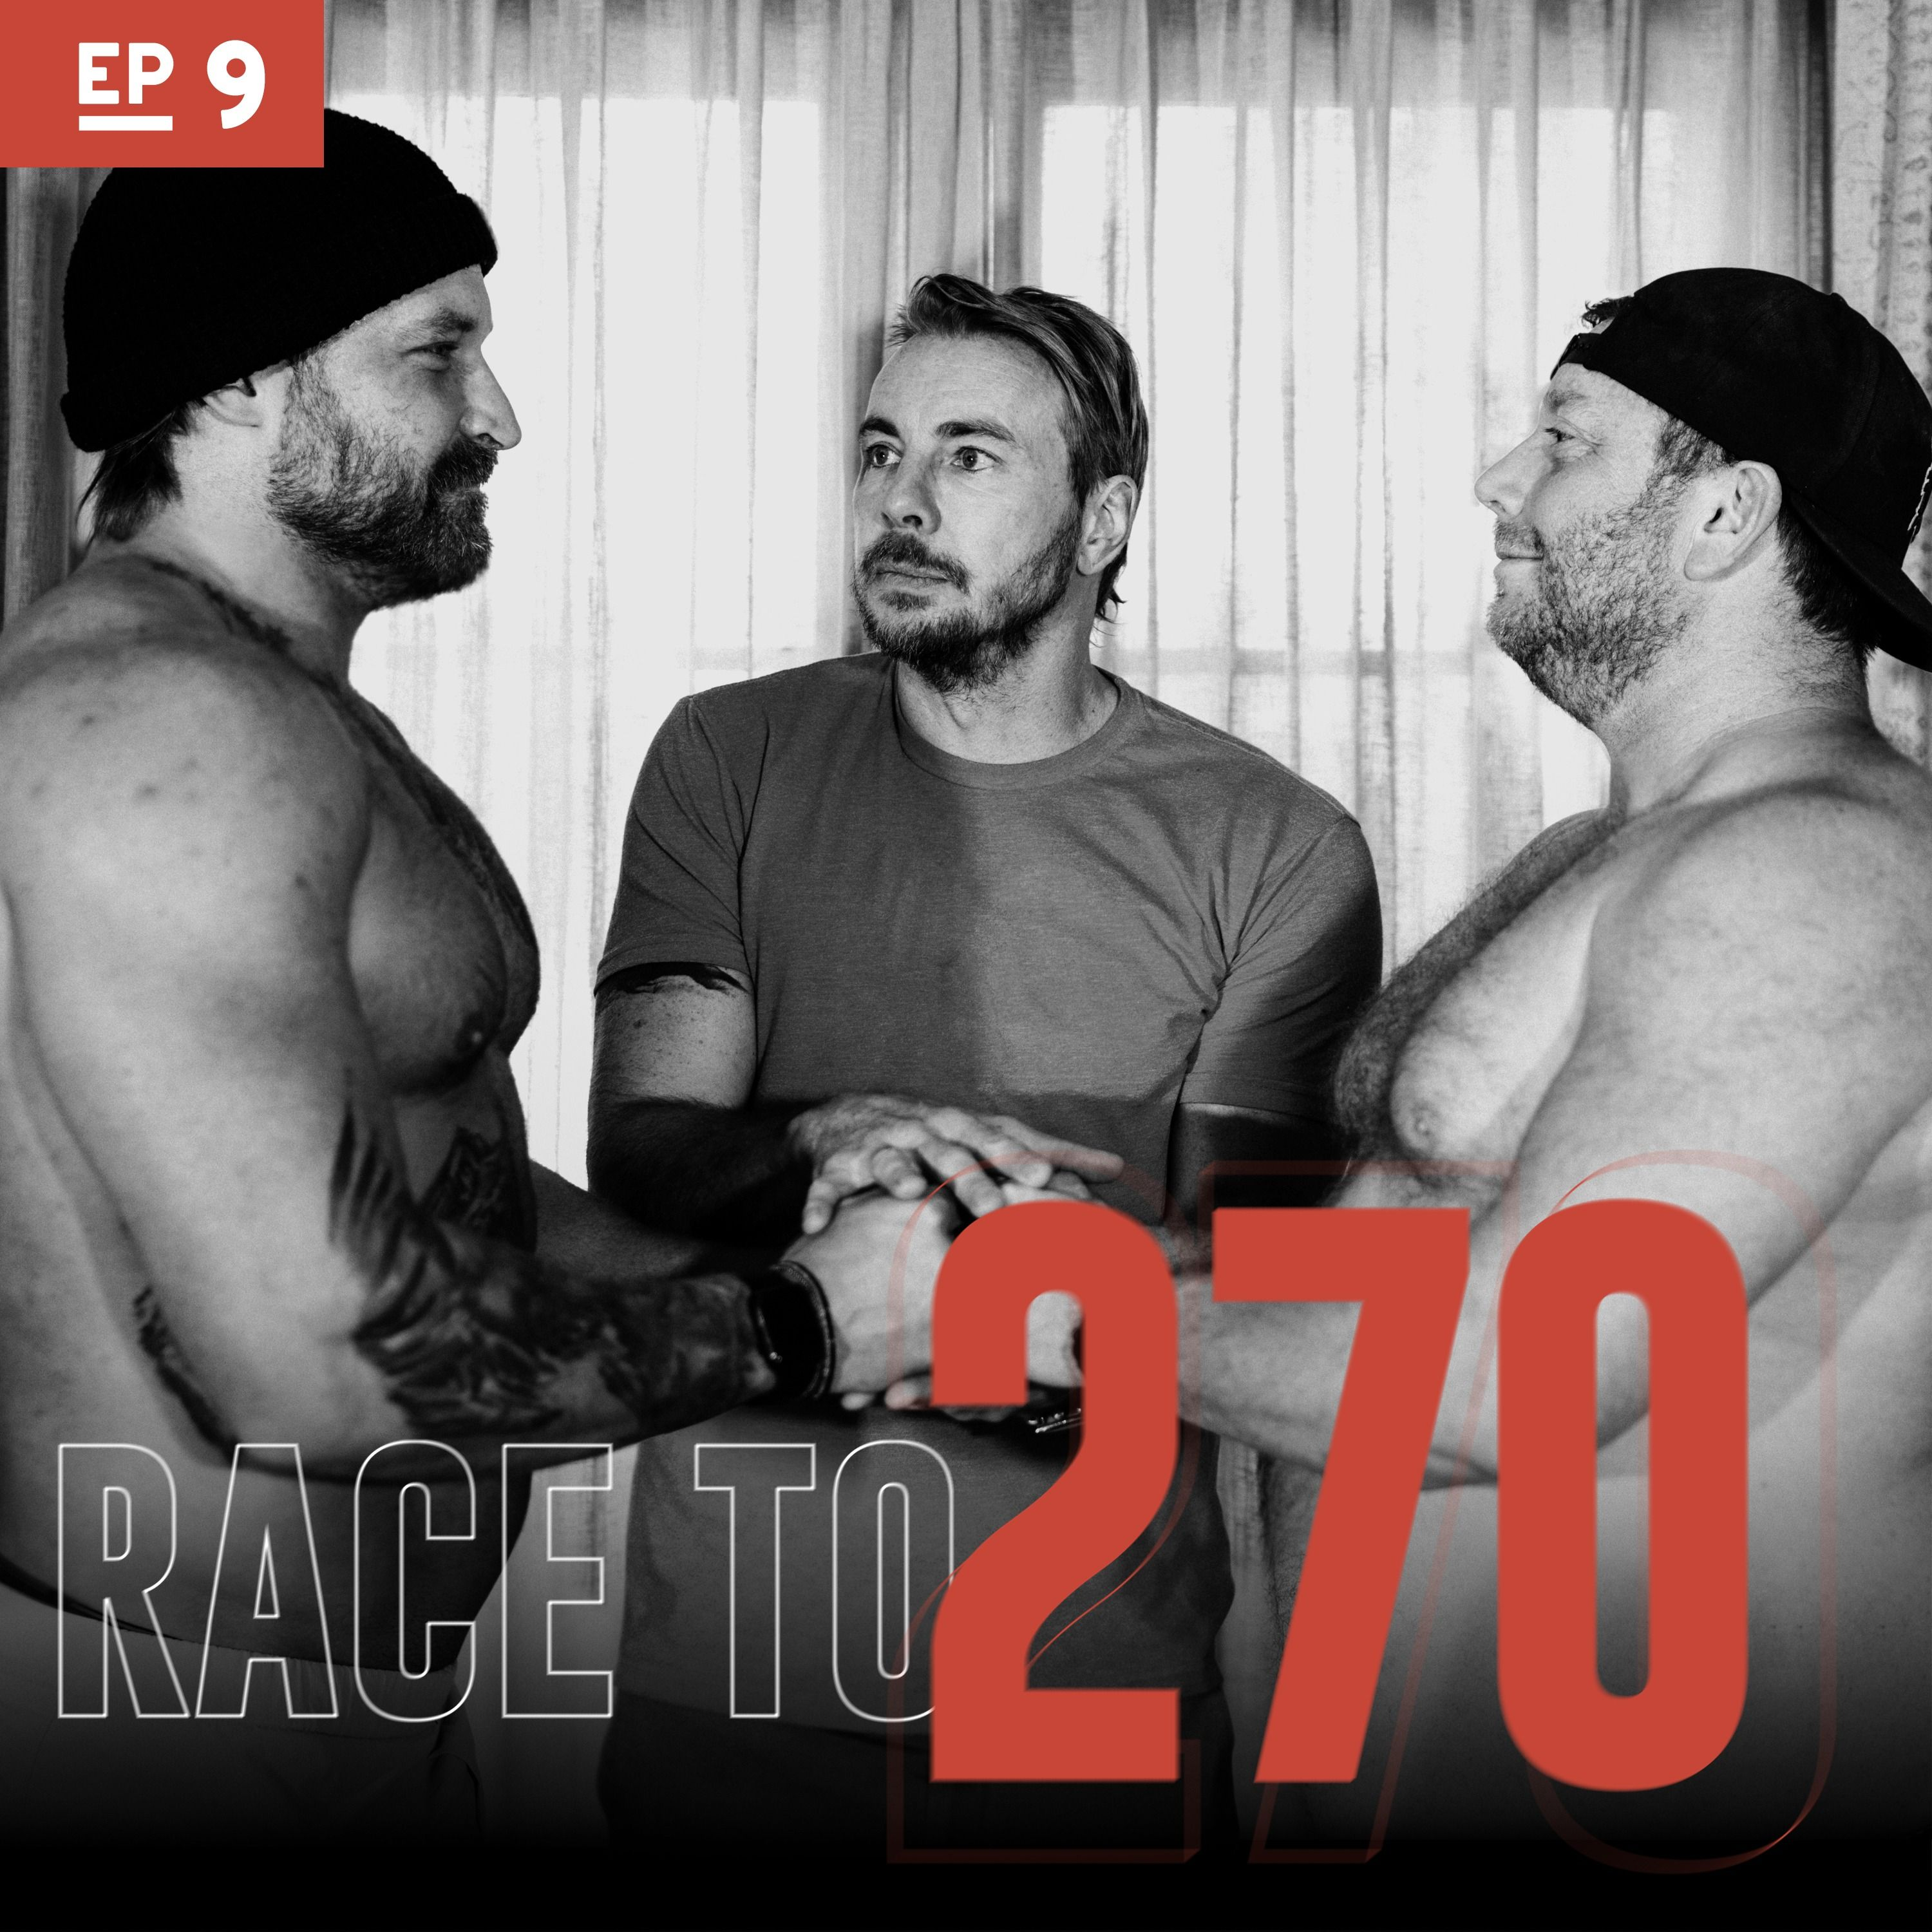 Race to 270: Peyronies & Sleeping Aids